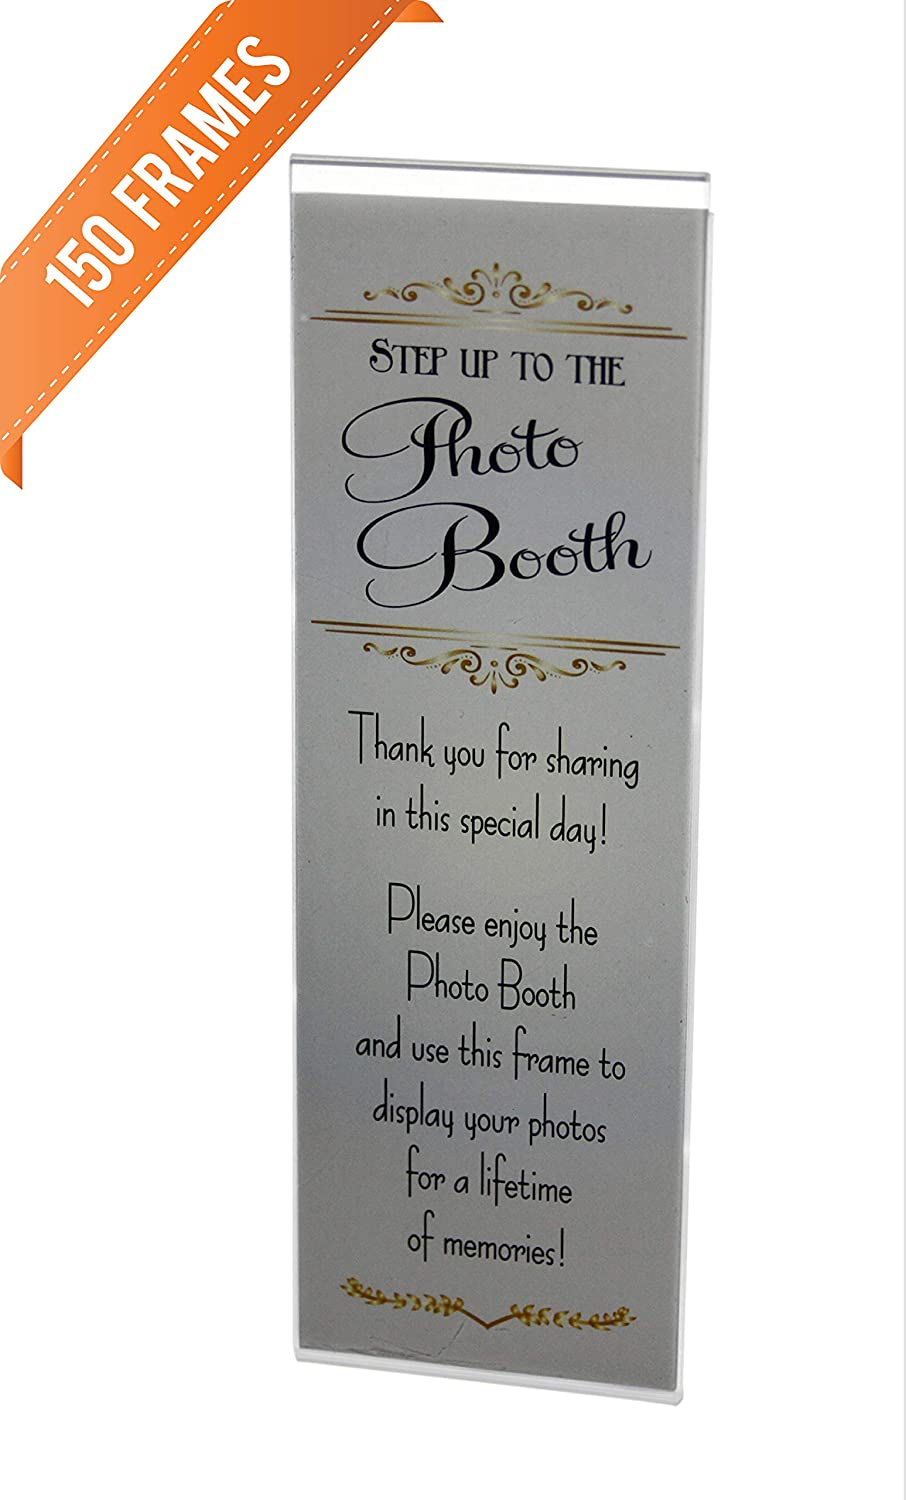 150 Acrylic Magnetic Photo Booth Frames for 2 X 6 Photo Strips